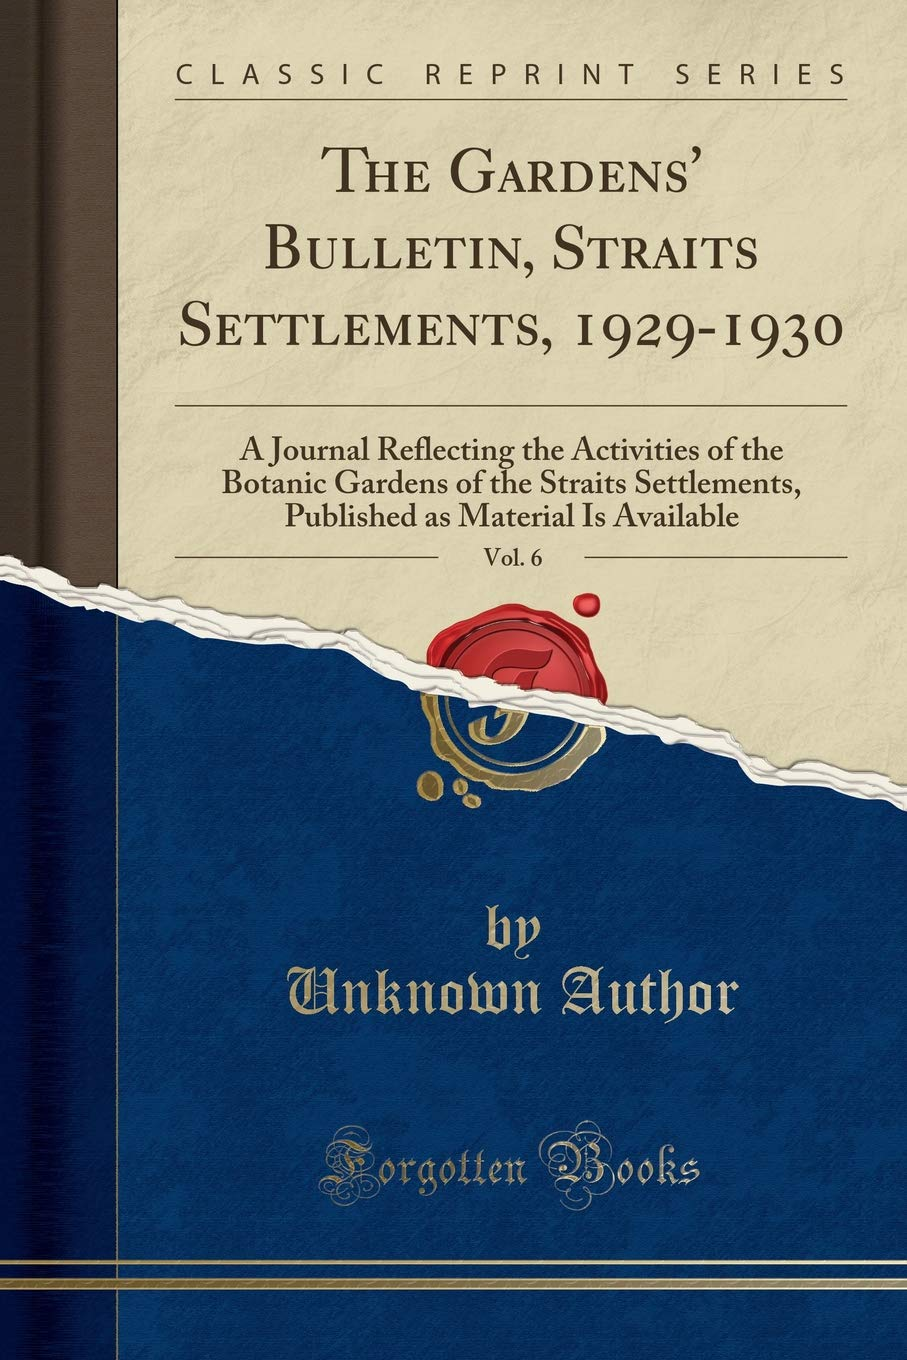 Download The Gardens' Bulletin, Straits Settlements, 1929-1930, Vol. 6: A Journal Reflecting the Activities of the Botanic Gardens of the Straits Settlements, ... as Material Is Available (Classic Reprint) pdf